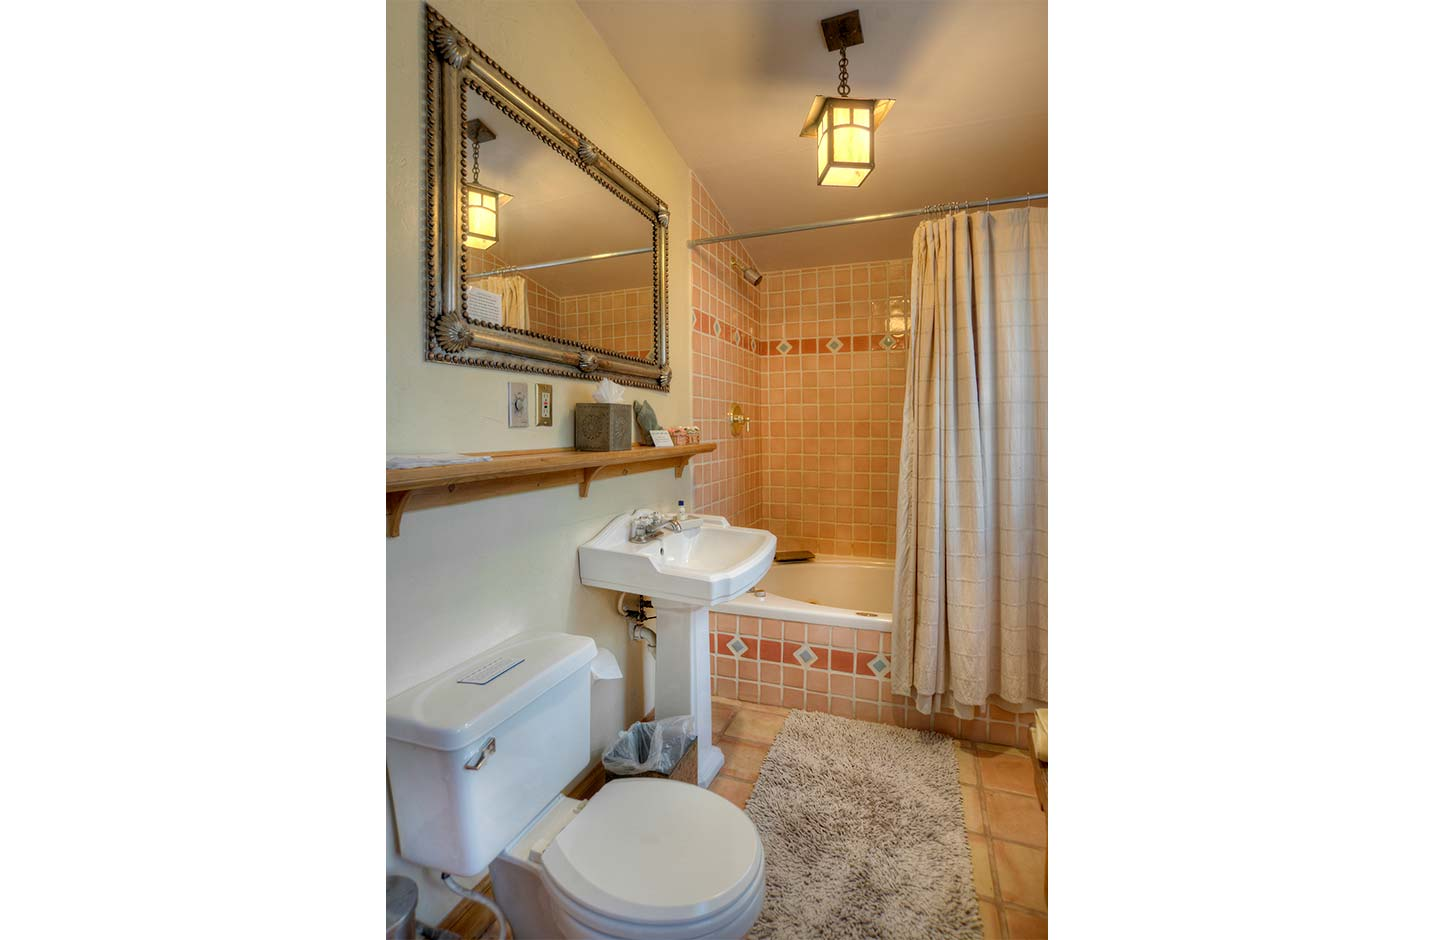 Bathroom with a tiled shower and tub